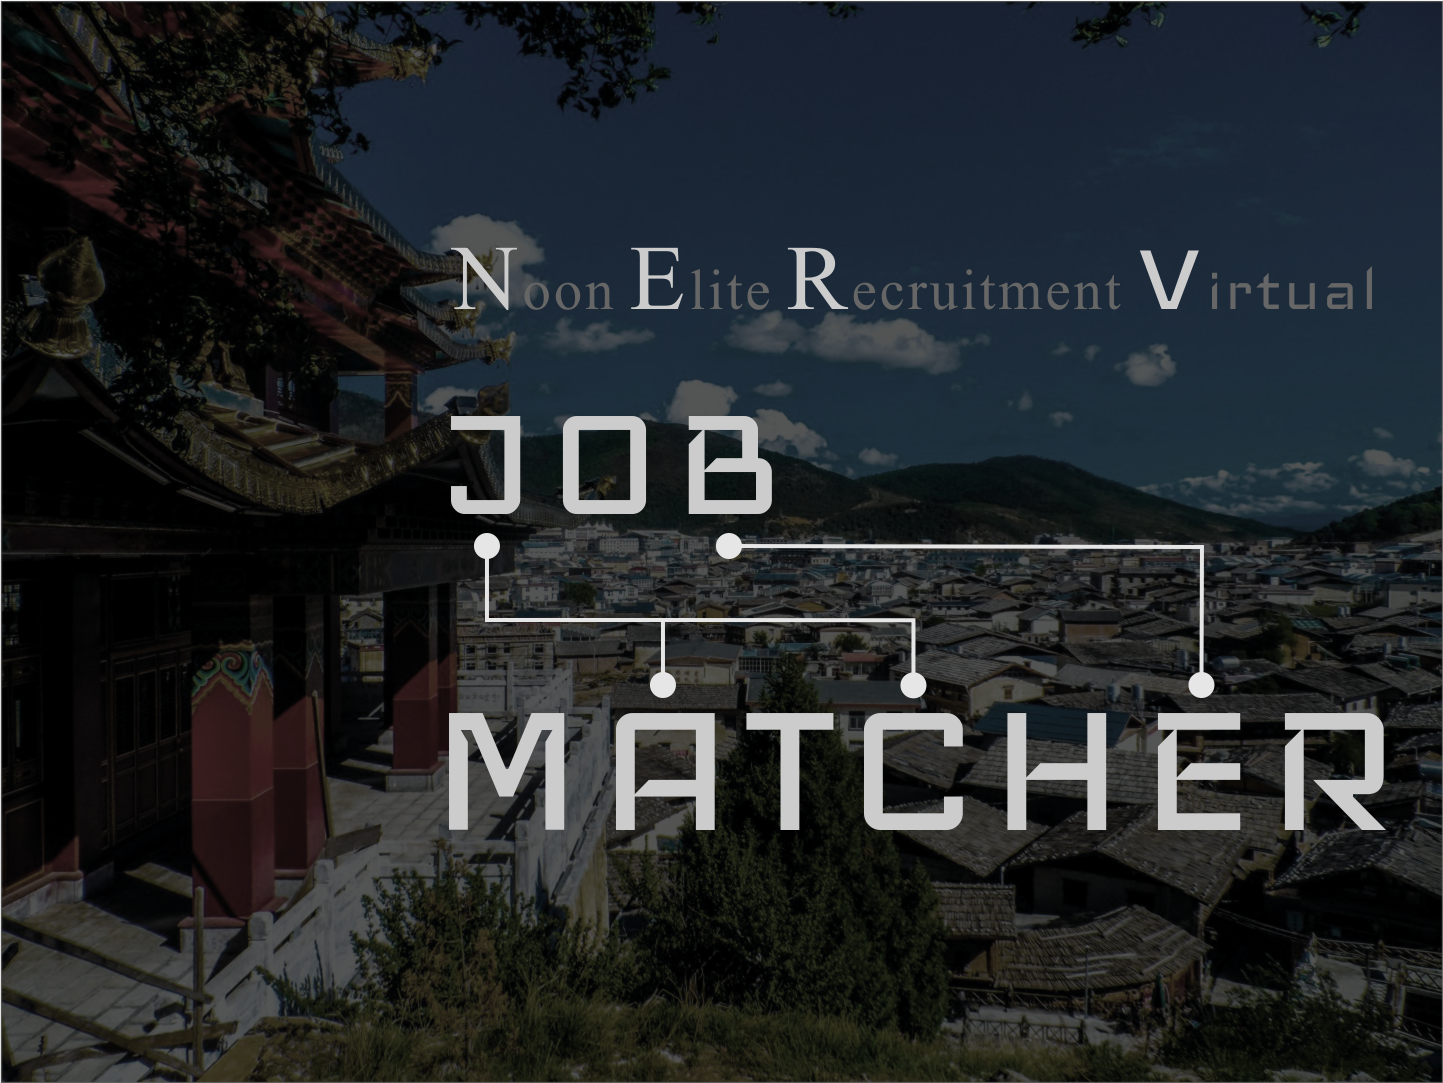 Noon Elite Recruitment (NERV) Jobmatcher